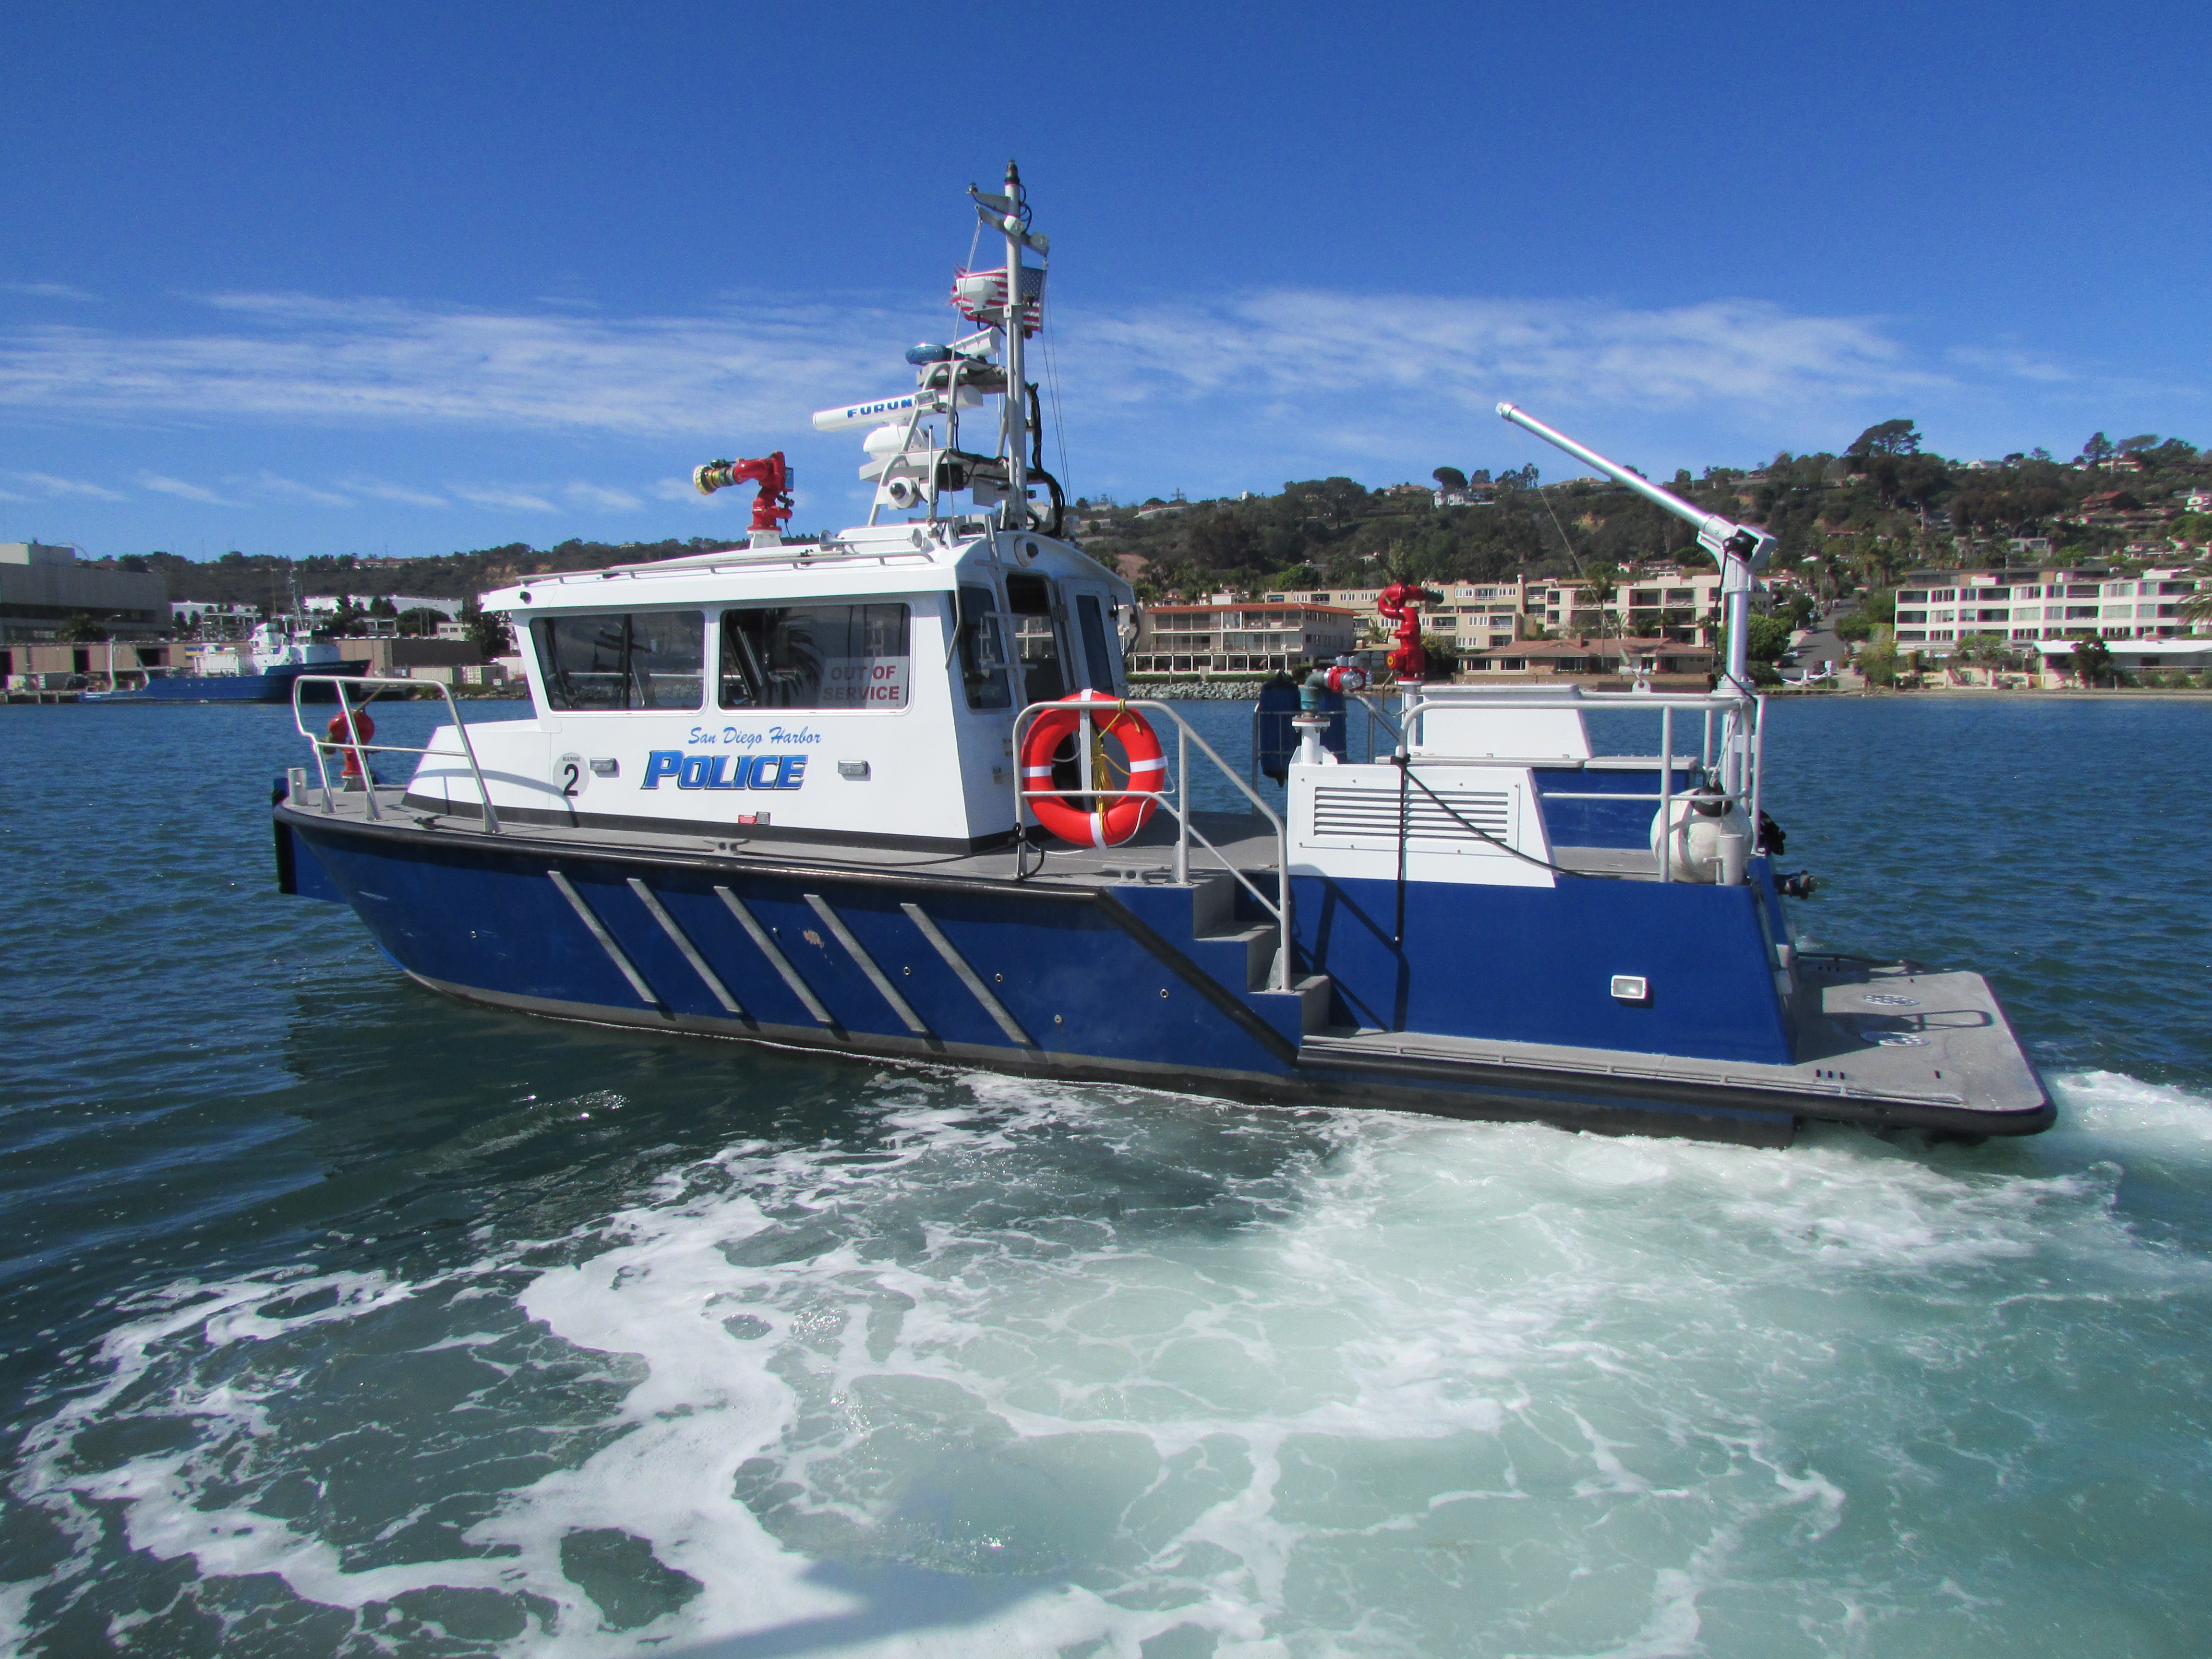 San Diego Harbor Police protect boaters, coastline